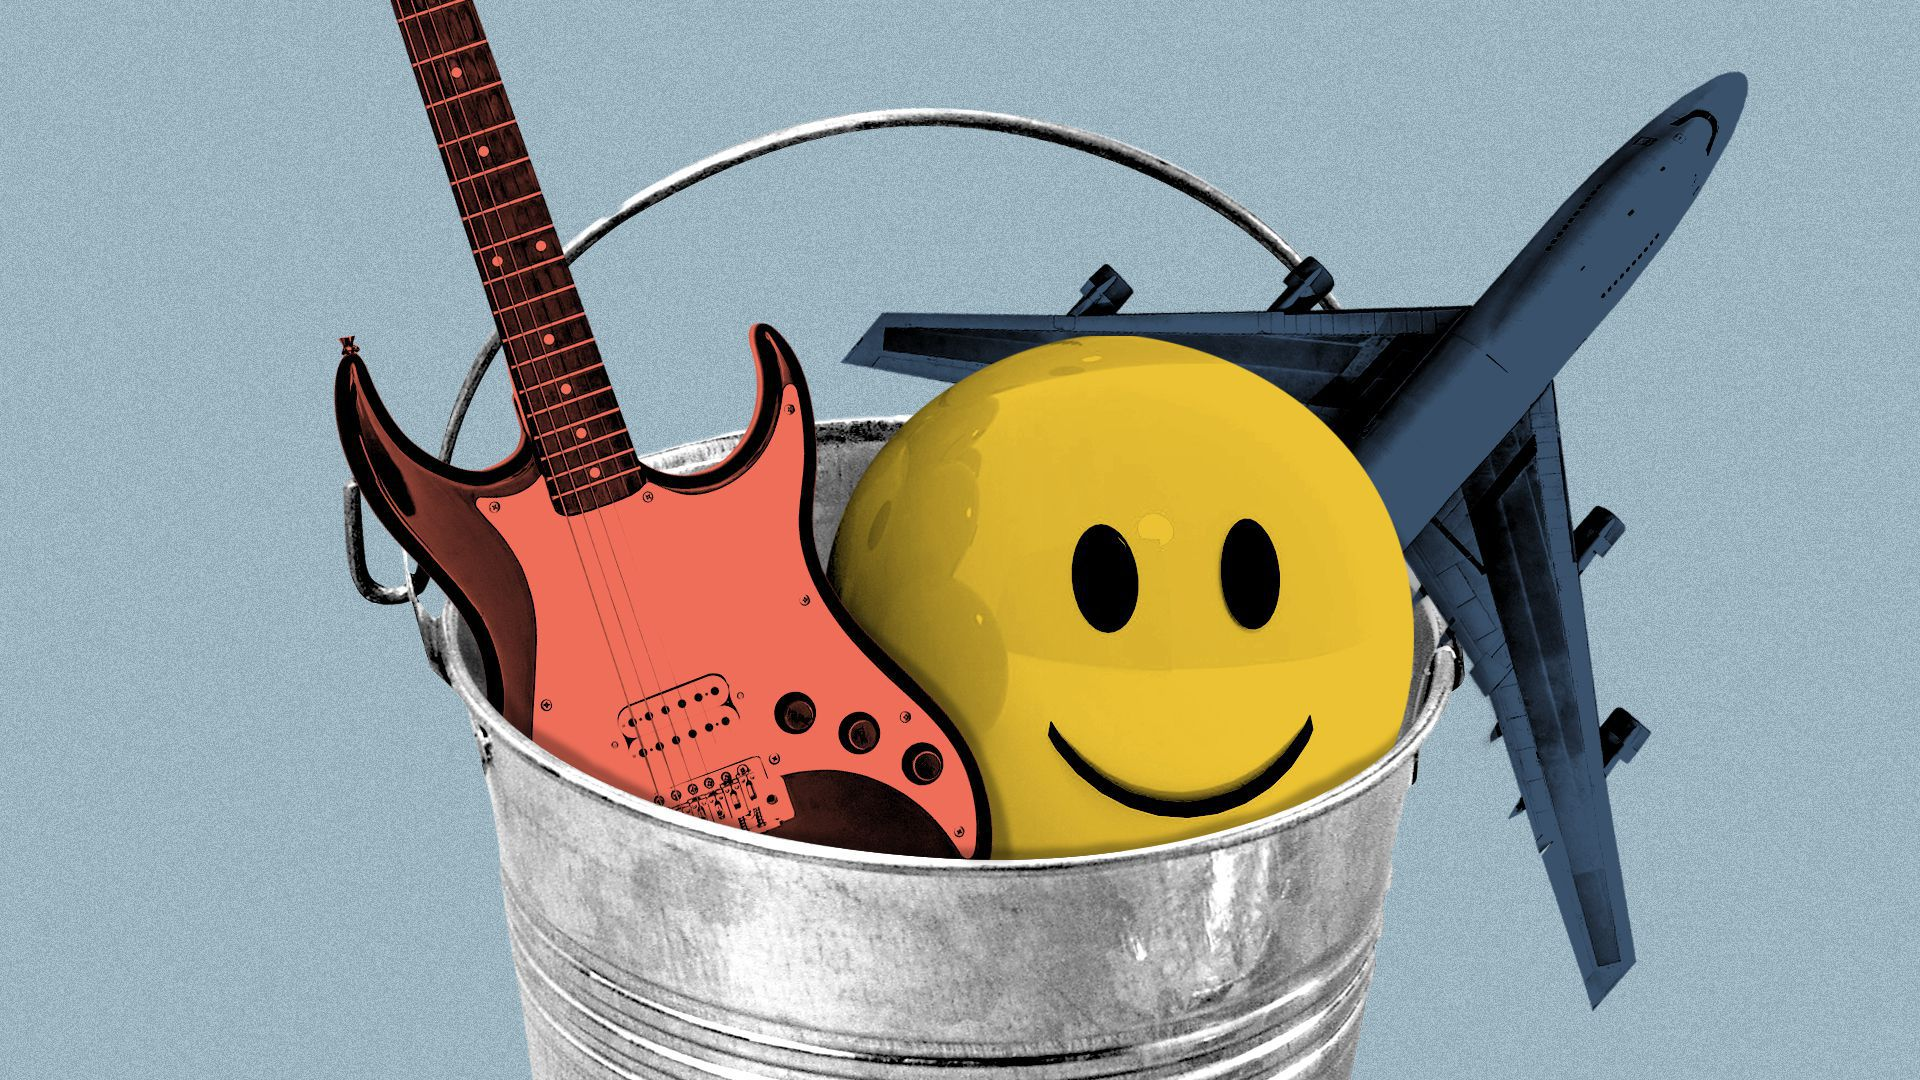 Illustration of a bucket filled with an airplane, a guitar, and a smiley-face ball.